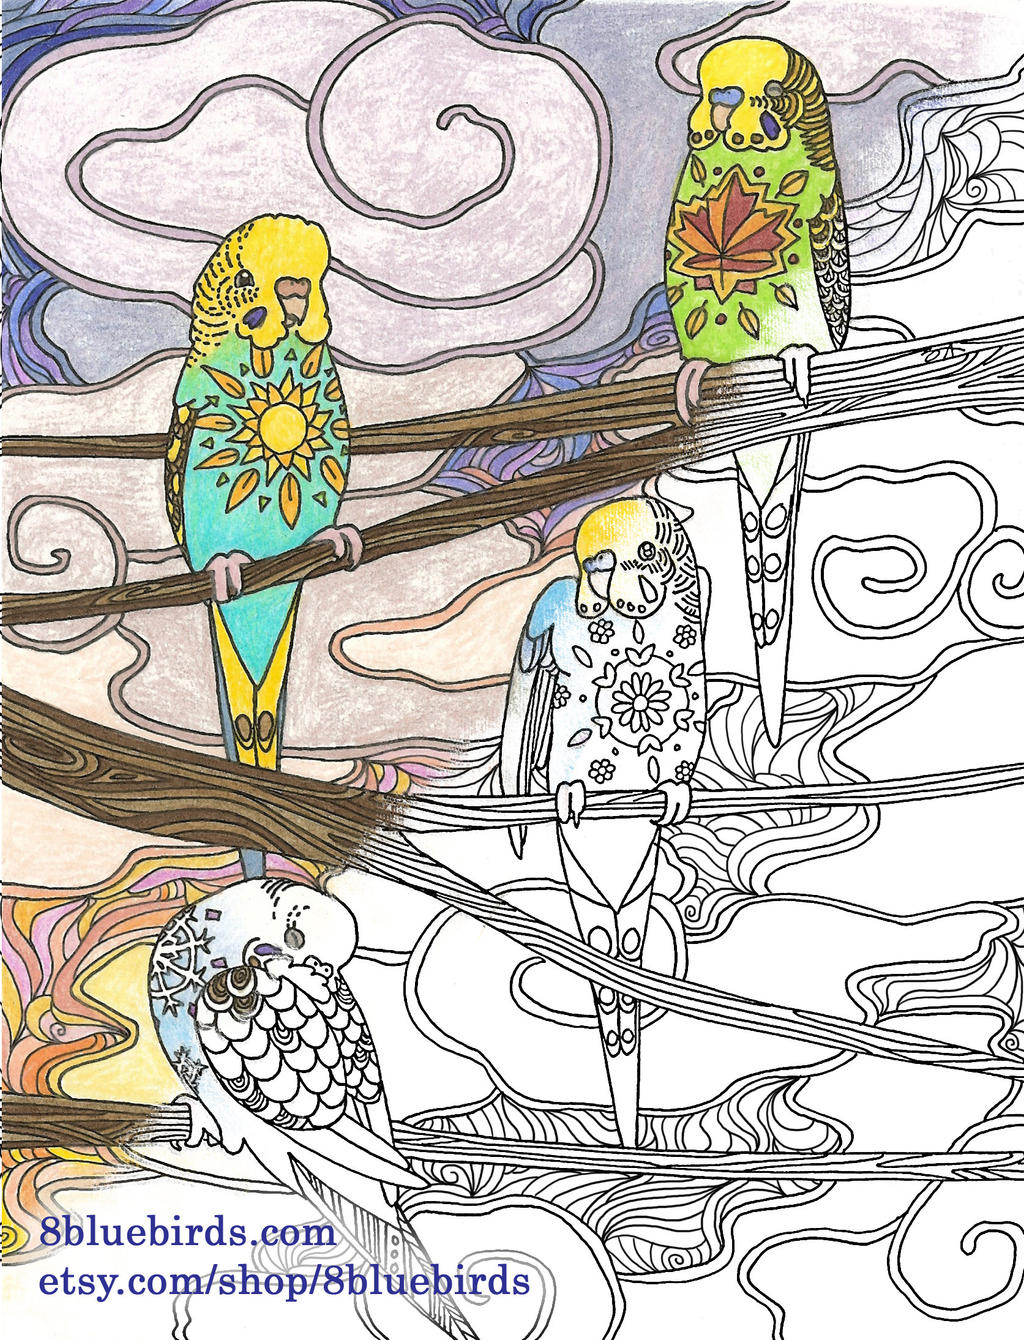 Budgie Seasons Coloring Page By The Wandering Bird On Deviantart